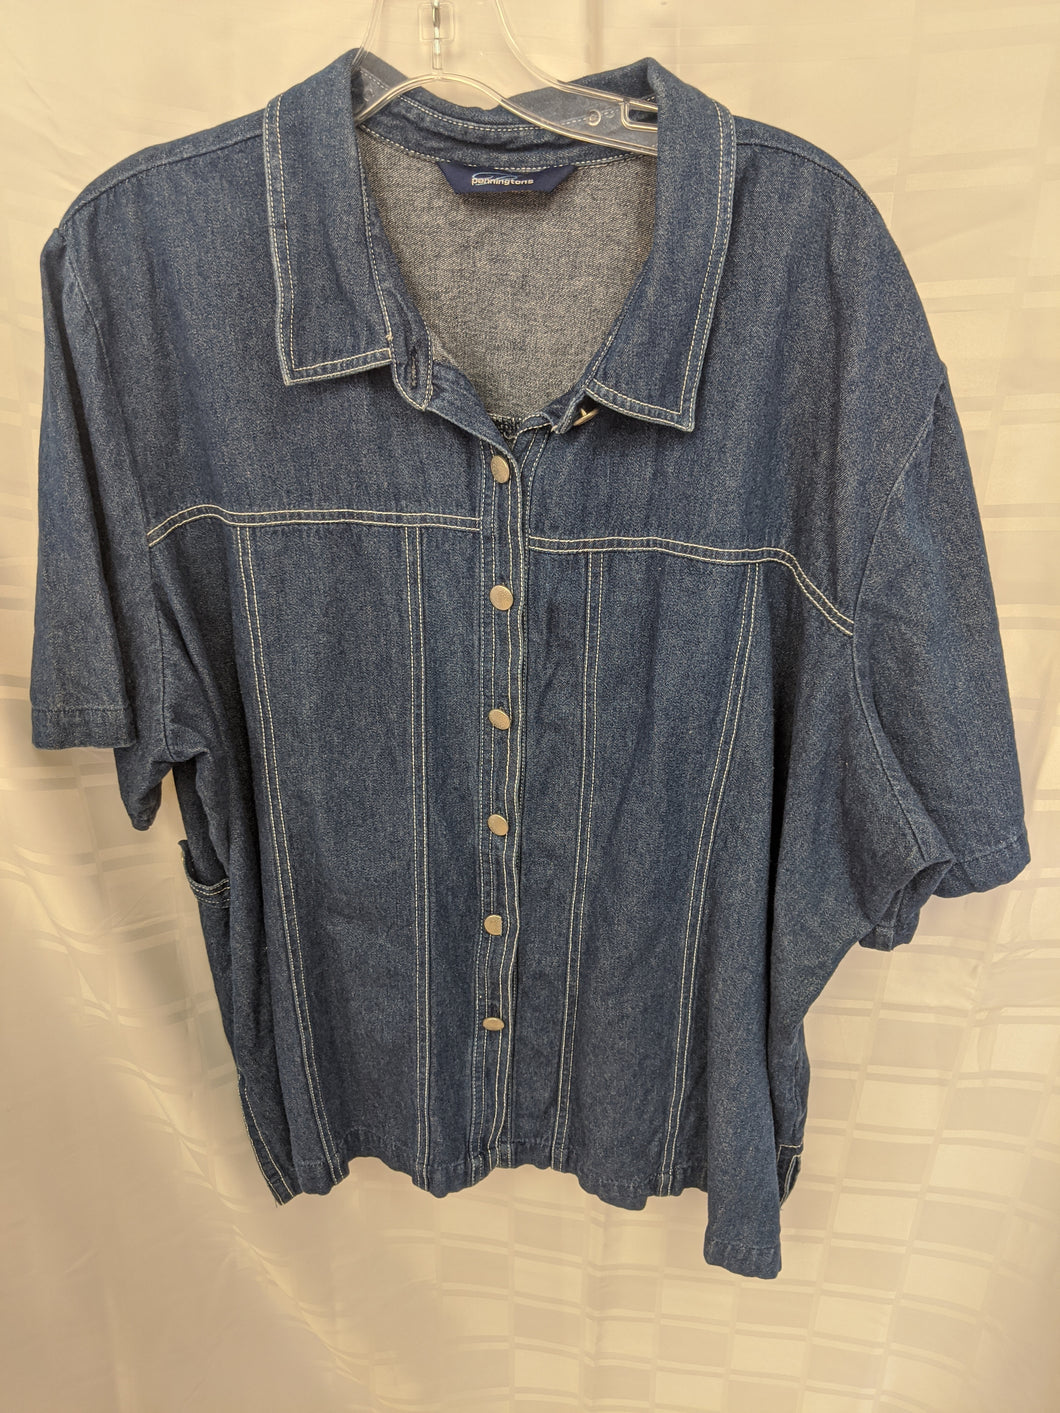 Short Sleeve Top - Size 28